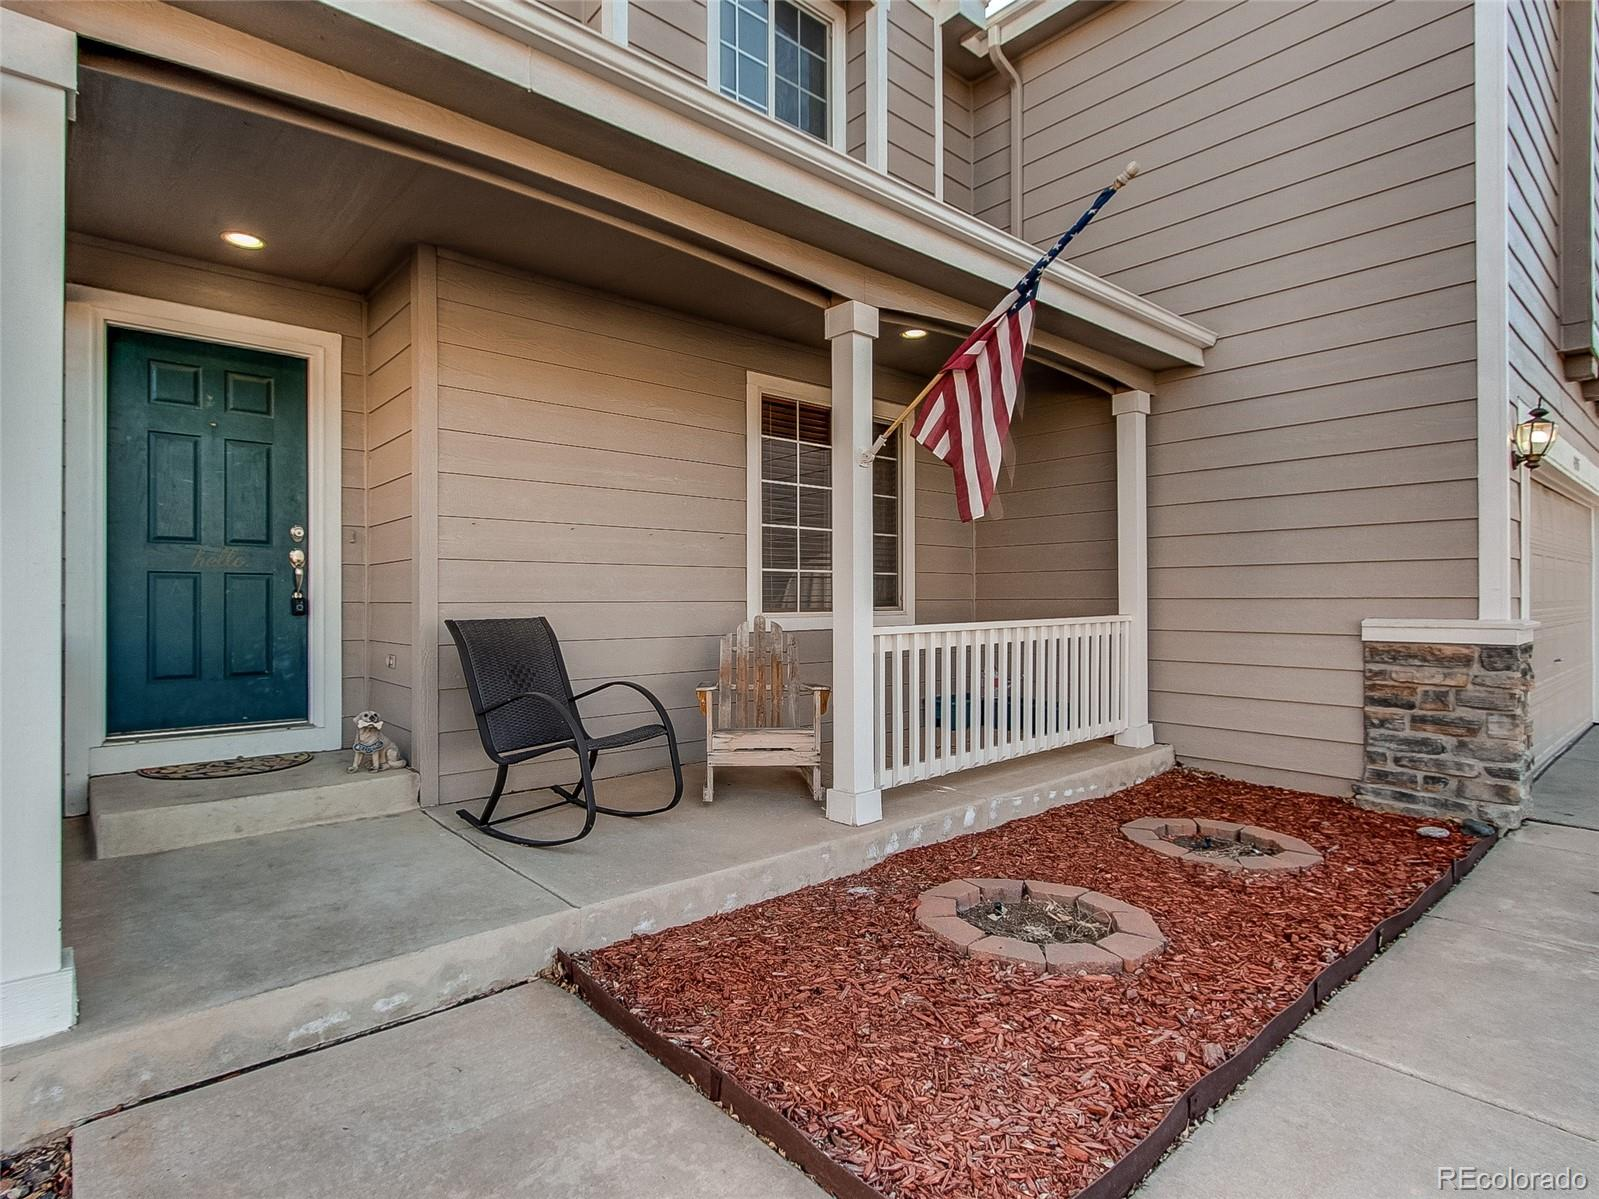 MLS# 4446594 - 3 - 4355 Chatswood Court, Highlands Ranch, CO 80126